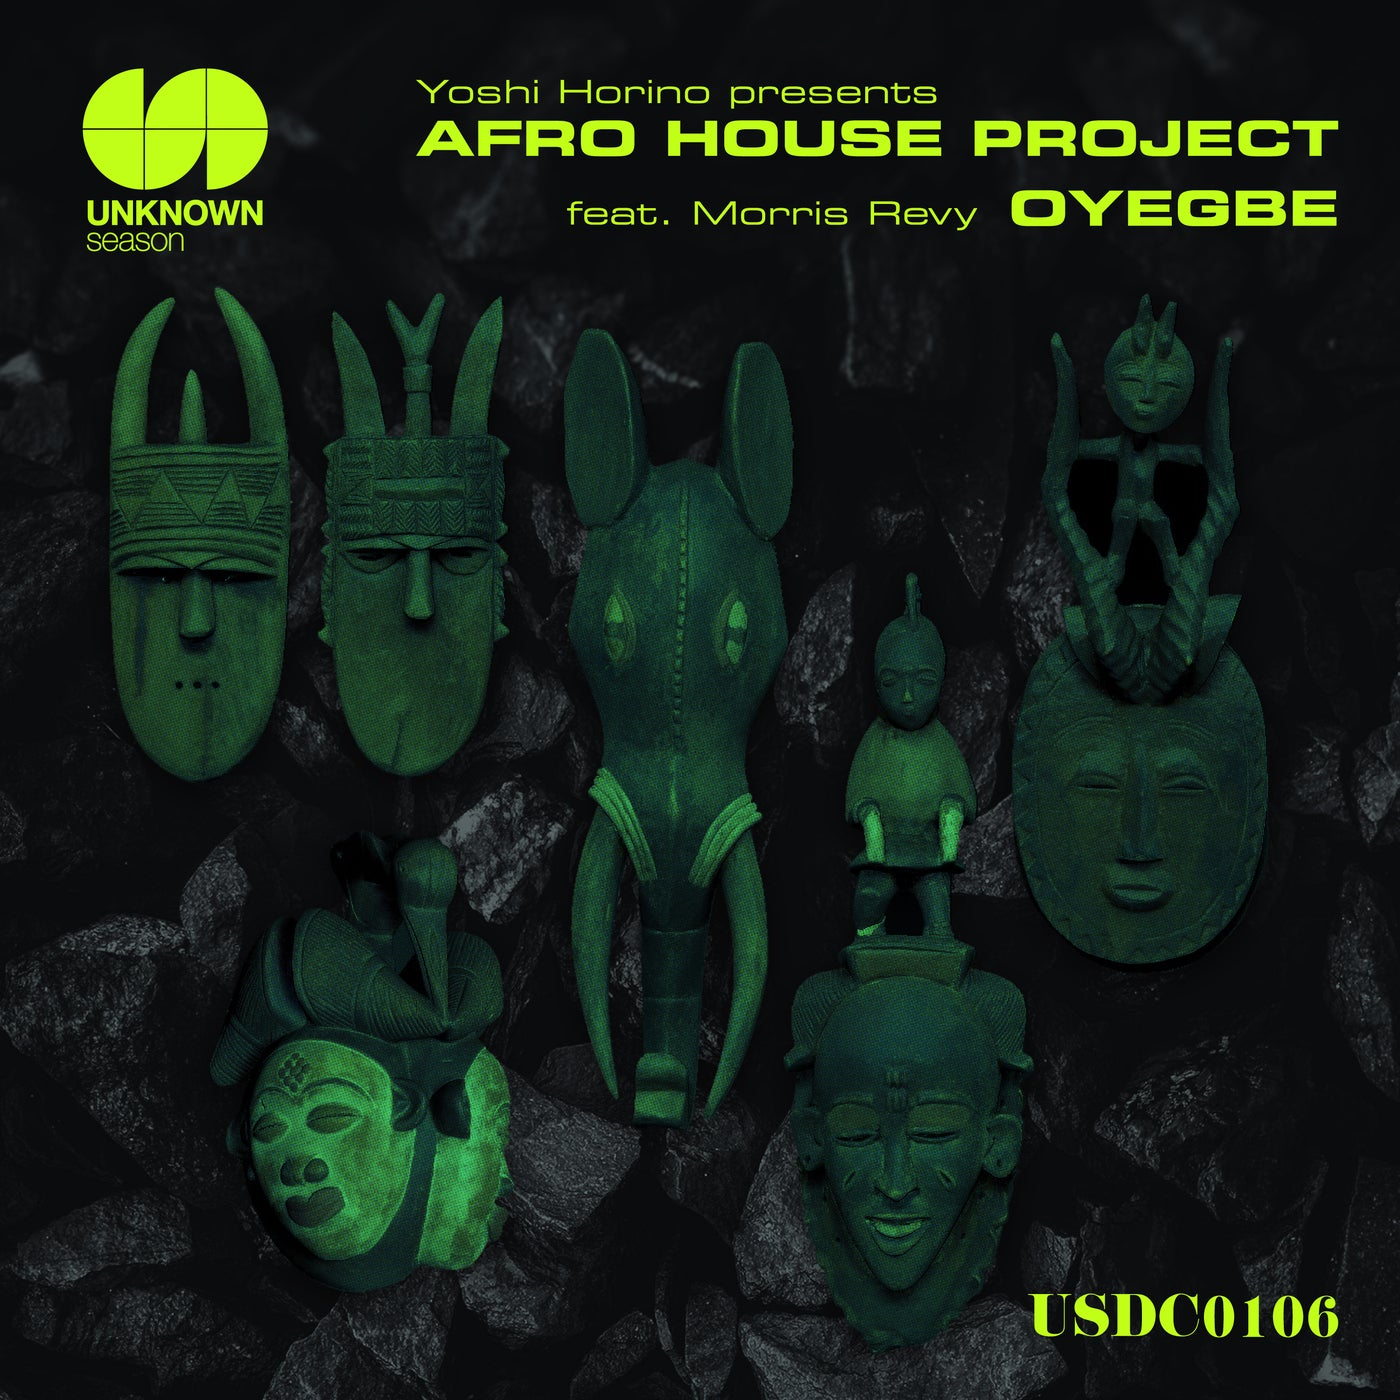 Various Performers - Yoshi Horino Presents Afro House Project - Oyegbe (2021)